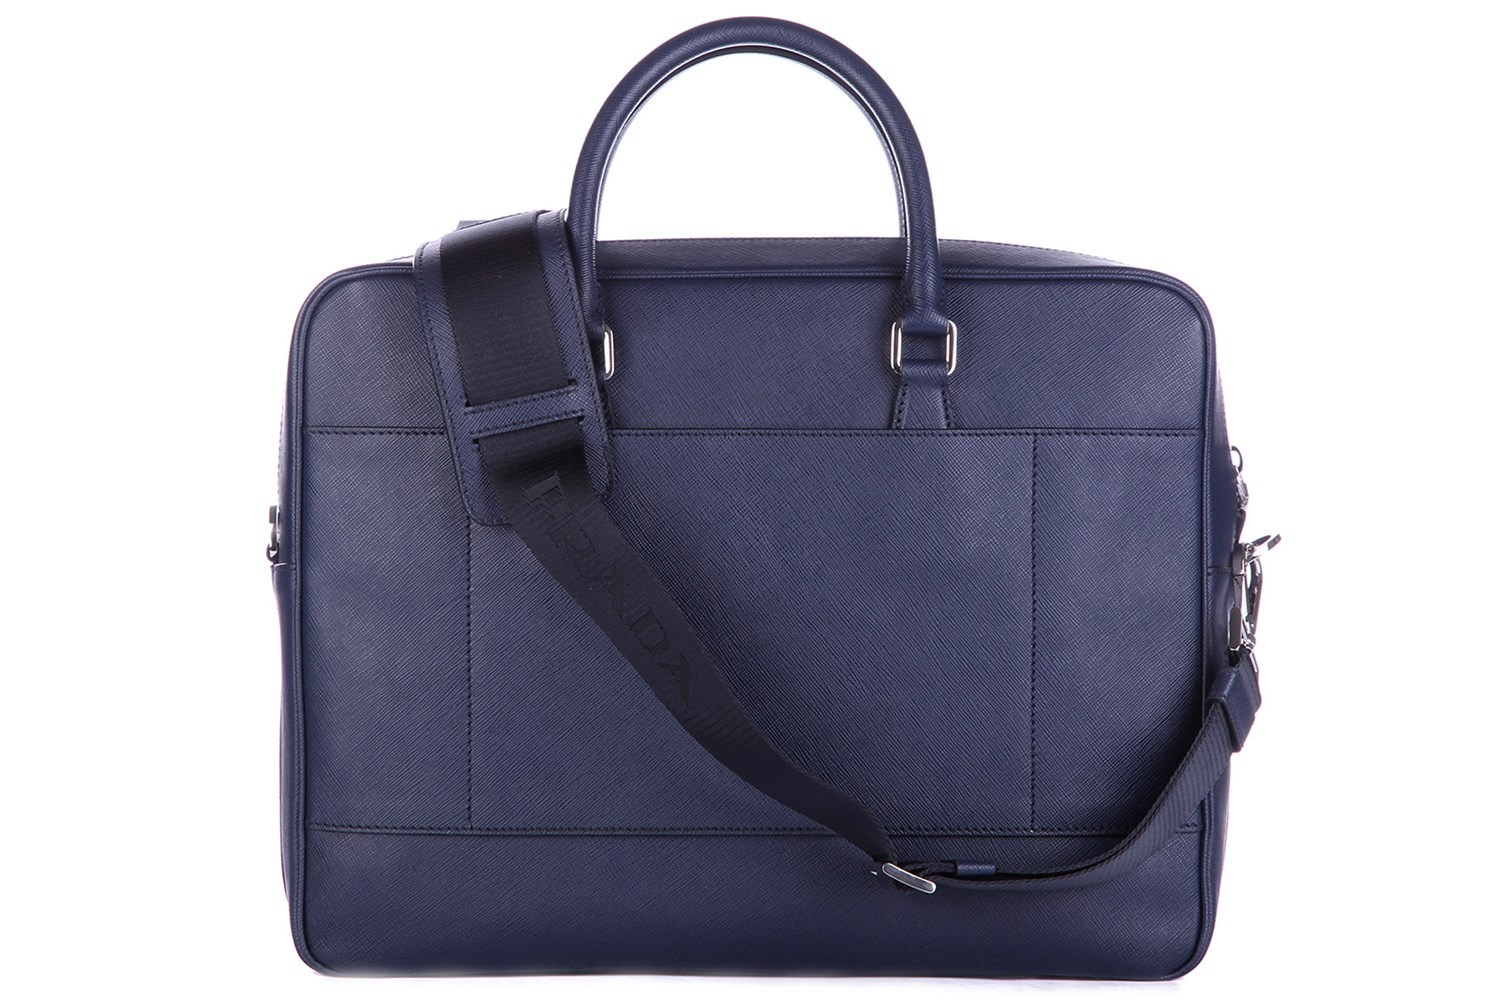 Prada Men Messenger Bag | Prada Briefcase | Prada Mens Clutch